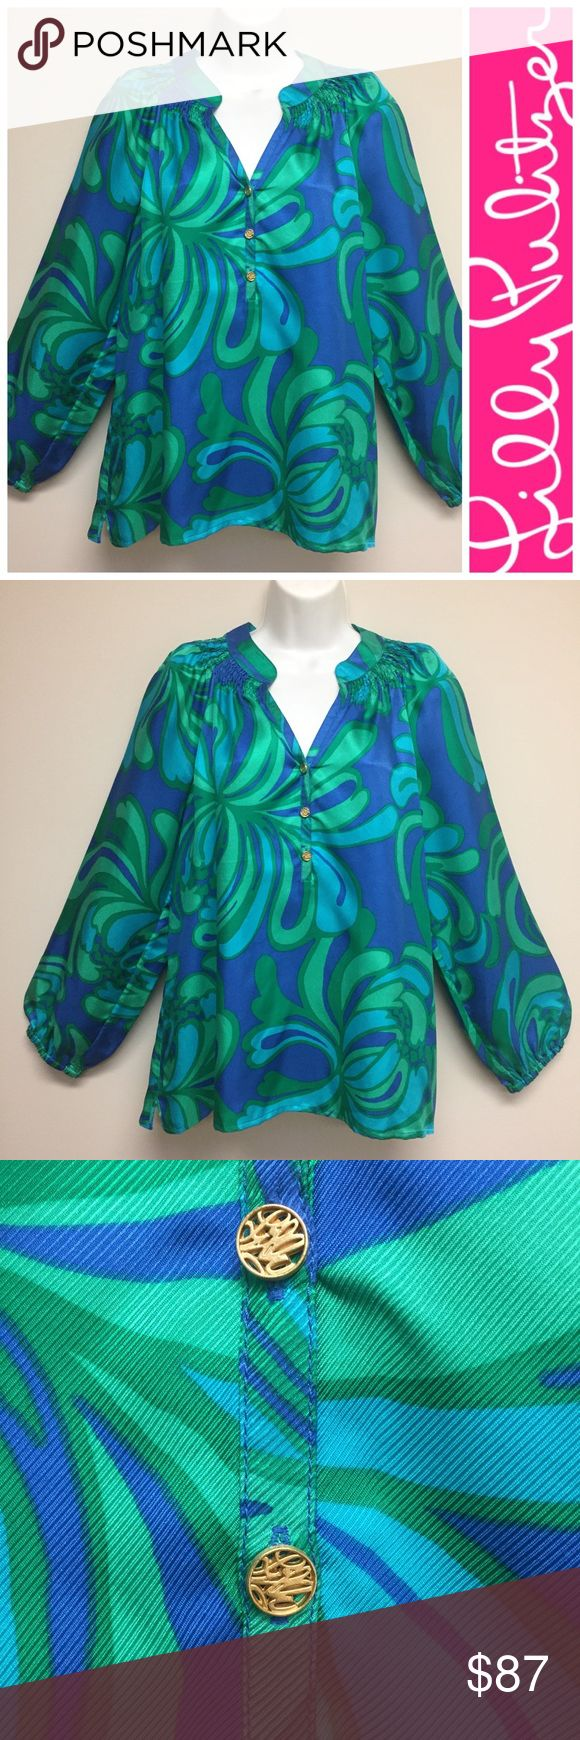 """EEC LILLY PULITZER Elsa Silk Blouse EEC Tunic style bright and fresh. No snags, stains, runs. I don't recall print name. 100% Silk classic Lilly gold buttons on neckline. Notice smocking detail around neck. Pet and smoke free closet 25.5"""" long, 21"""" chest, 24"""" sleeve length. Lilly Pulitzer Tops Blouses"""